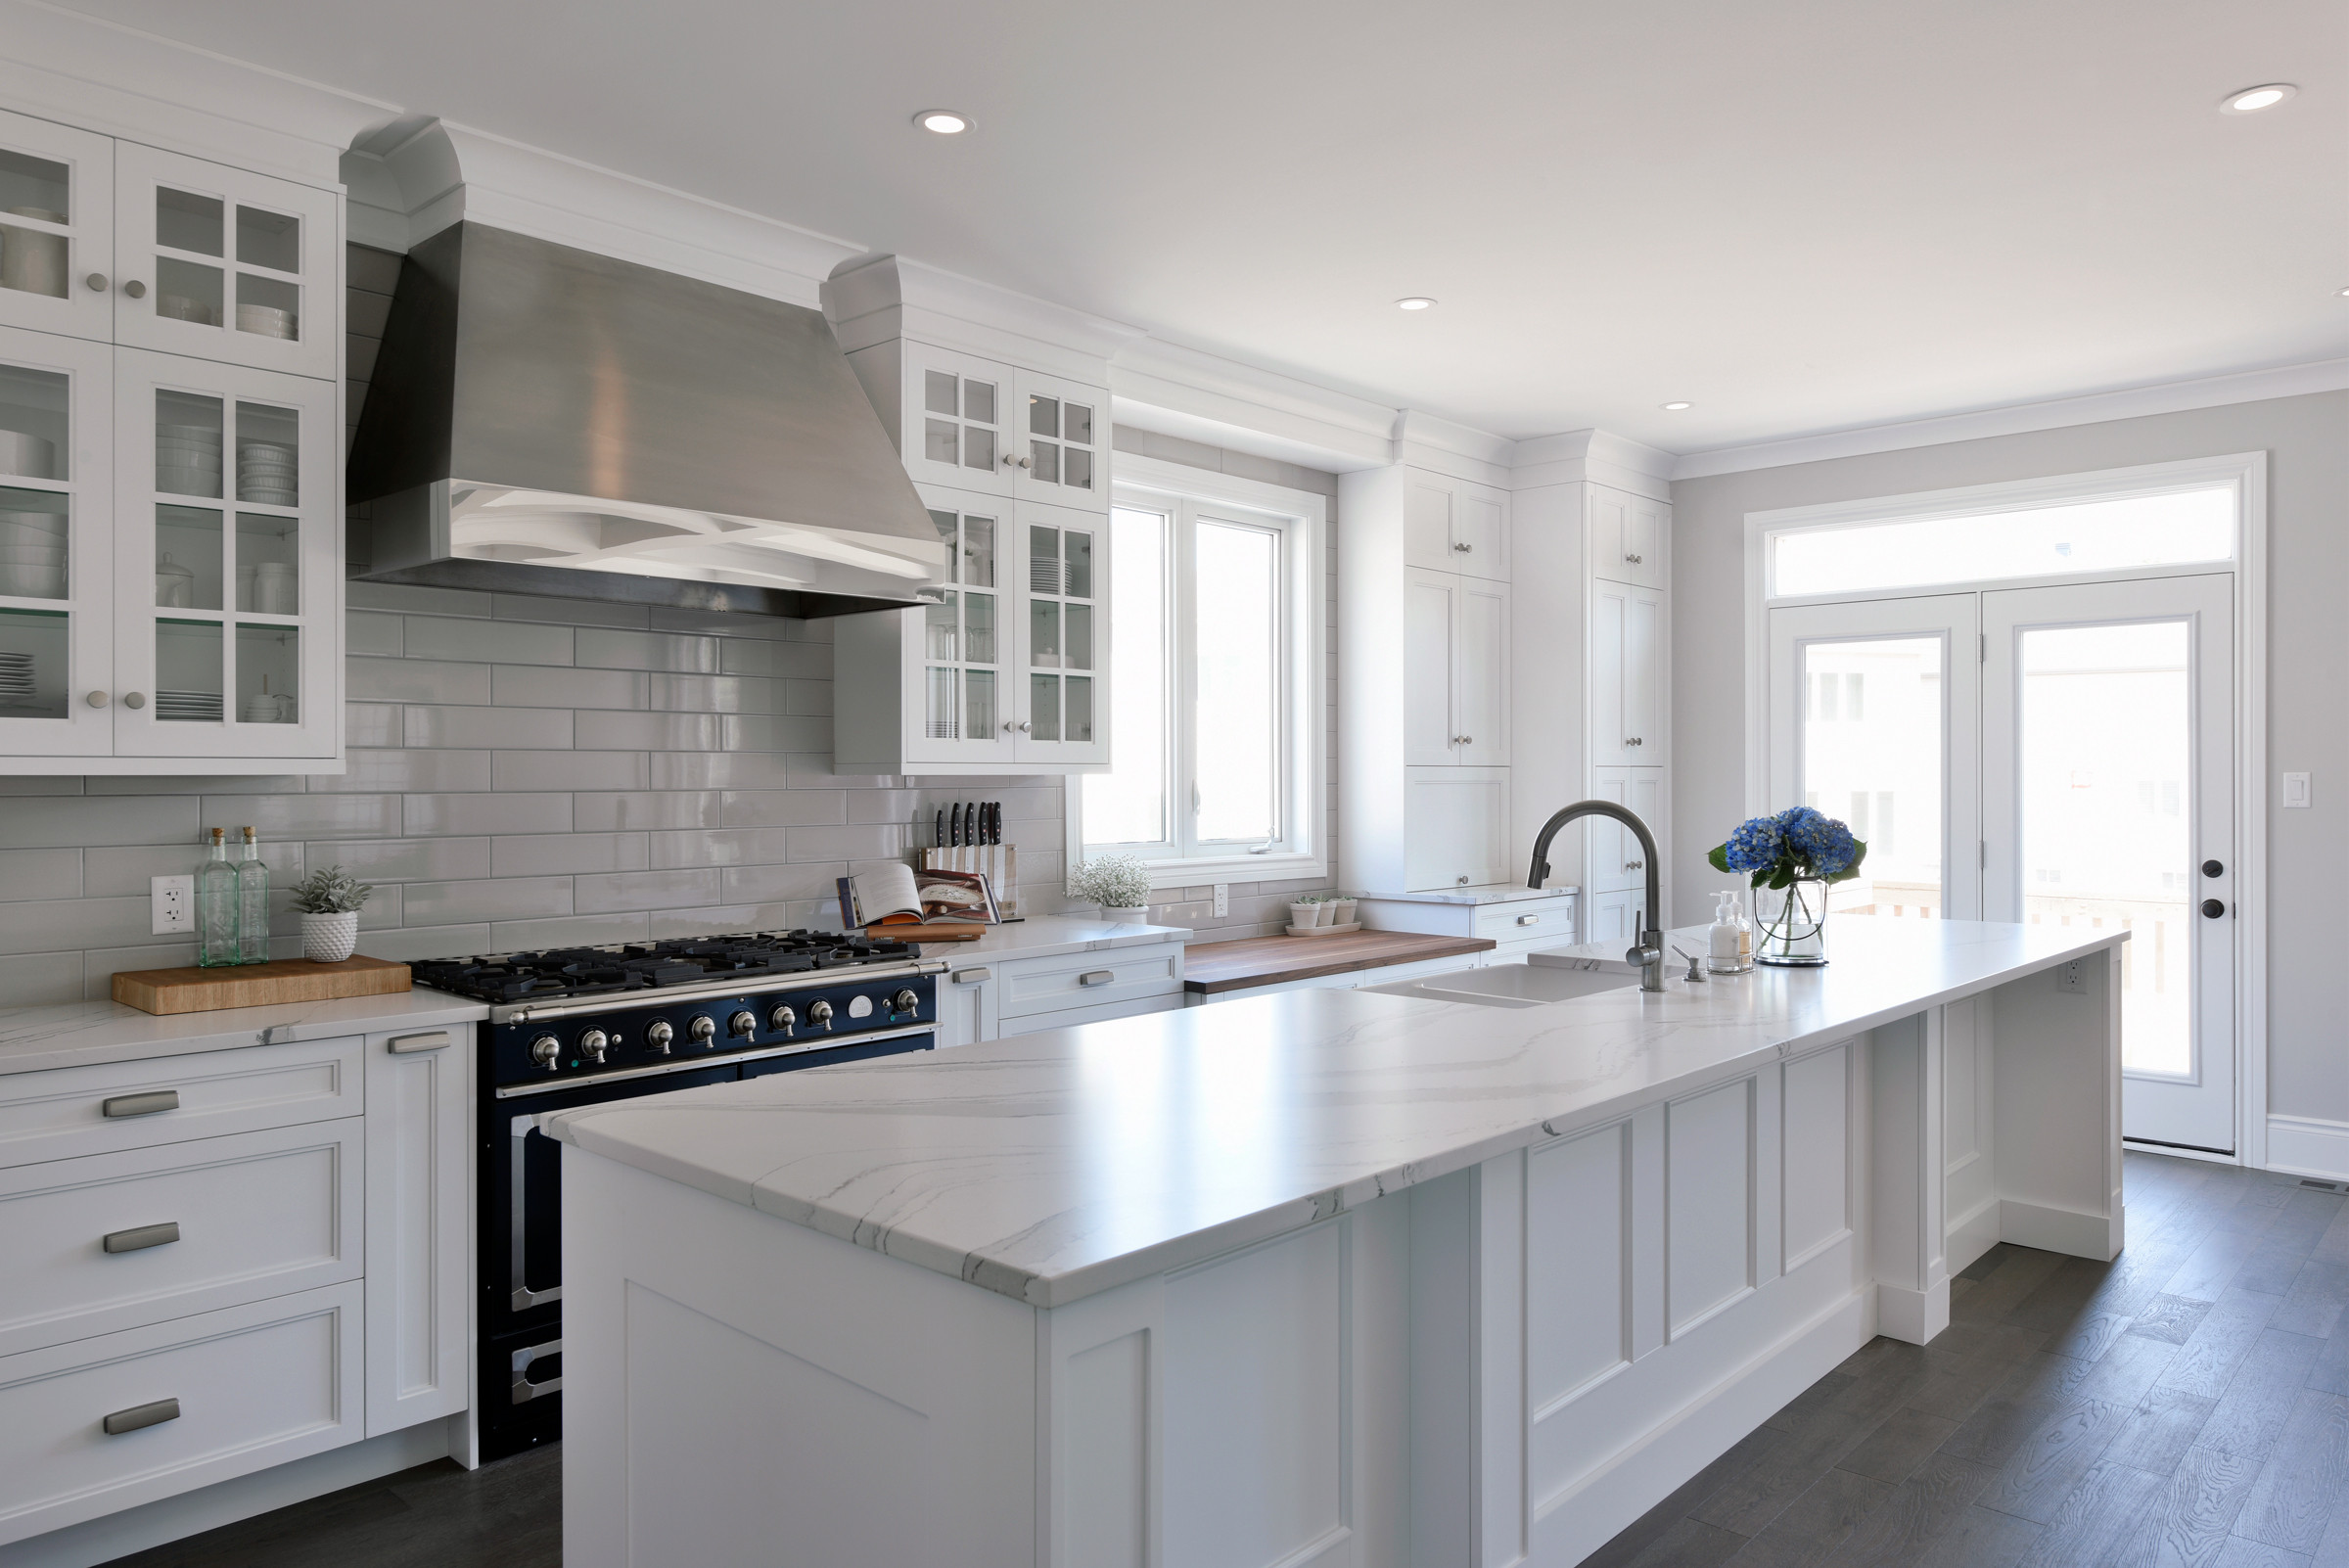 A kitchen with upper glass-front cabinets.